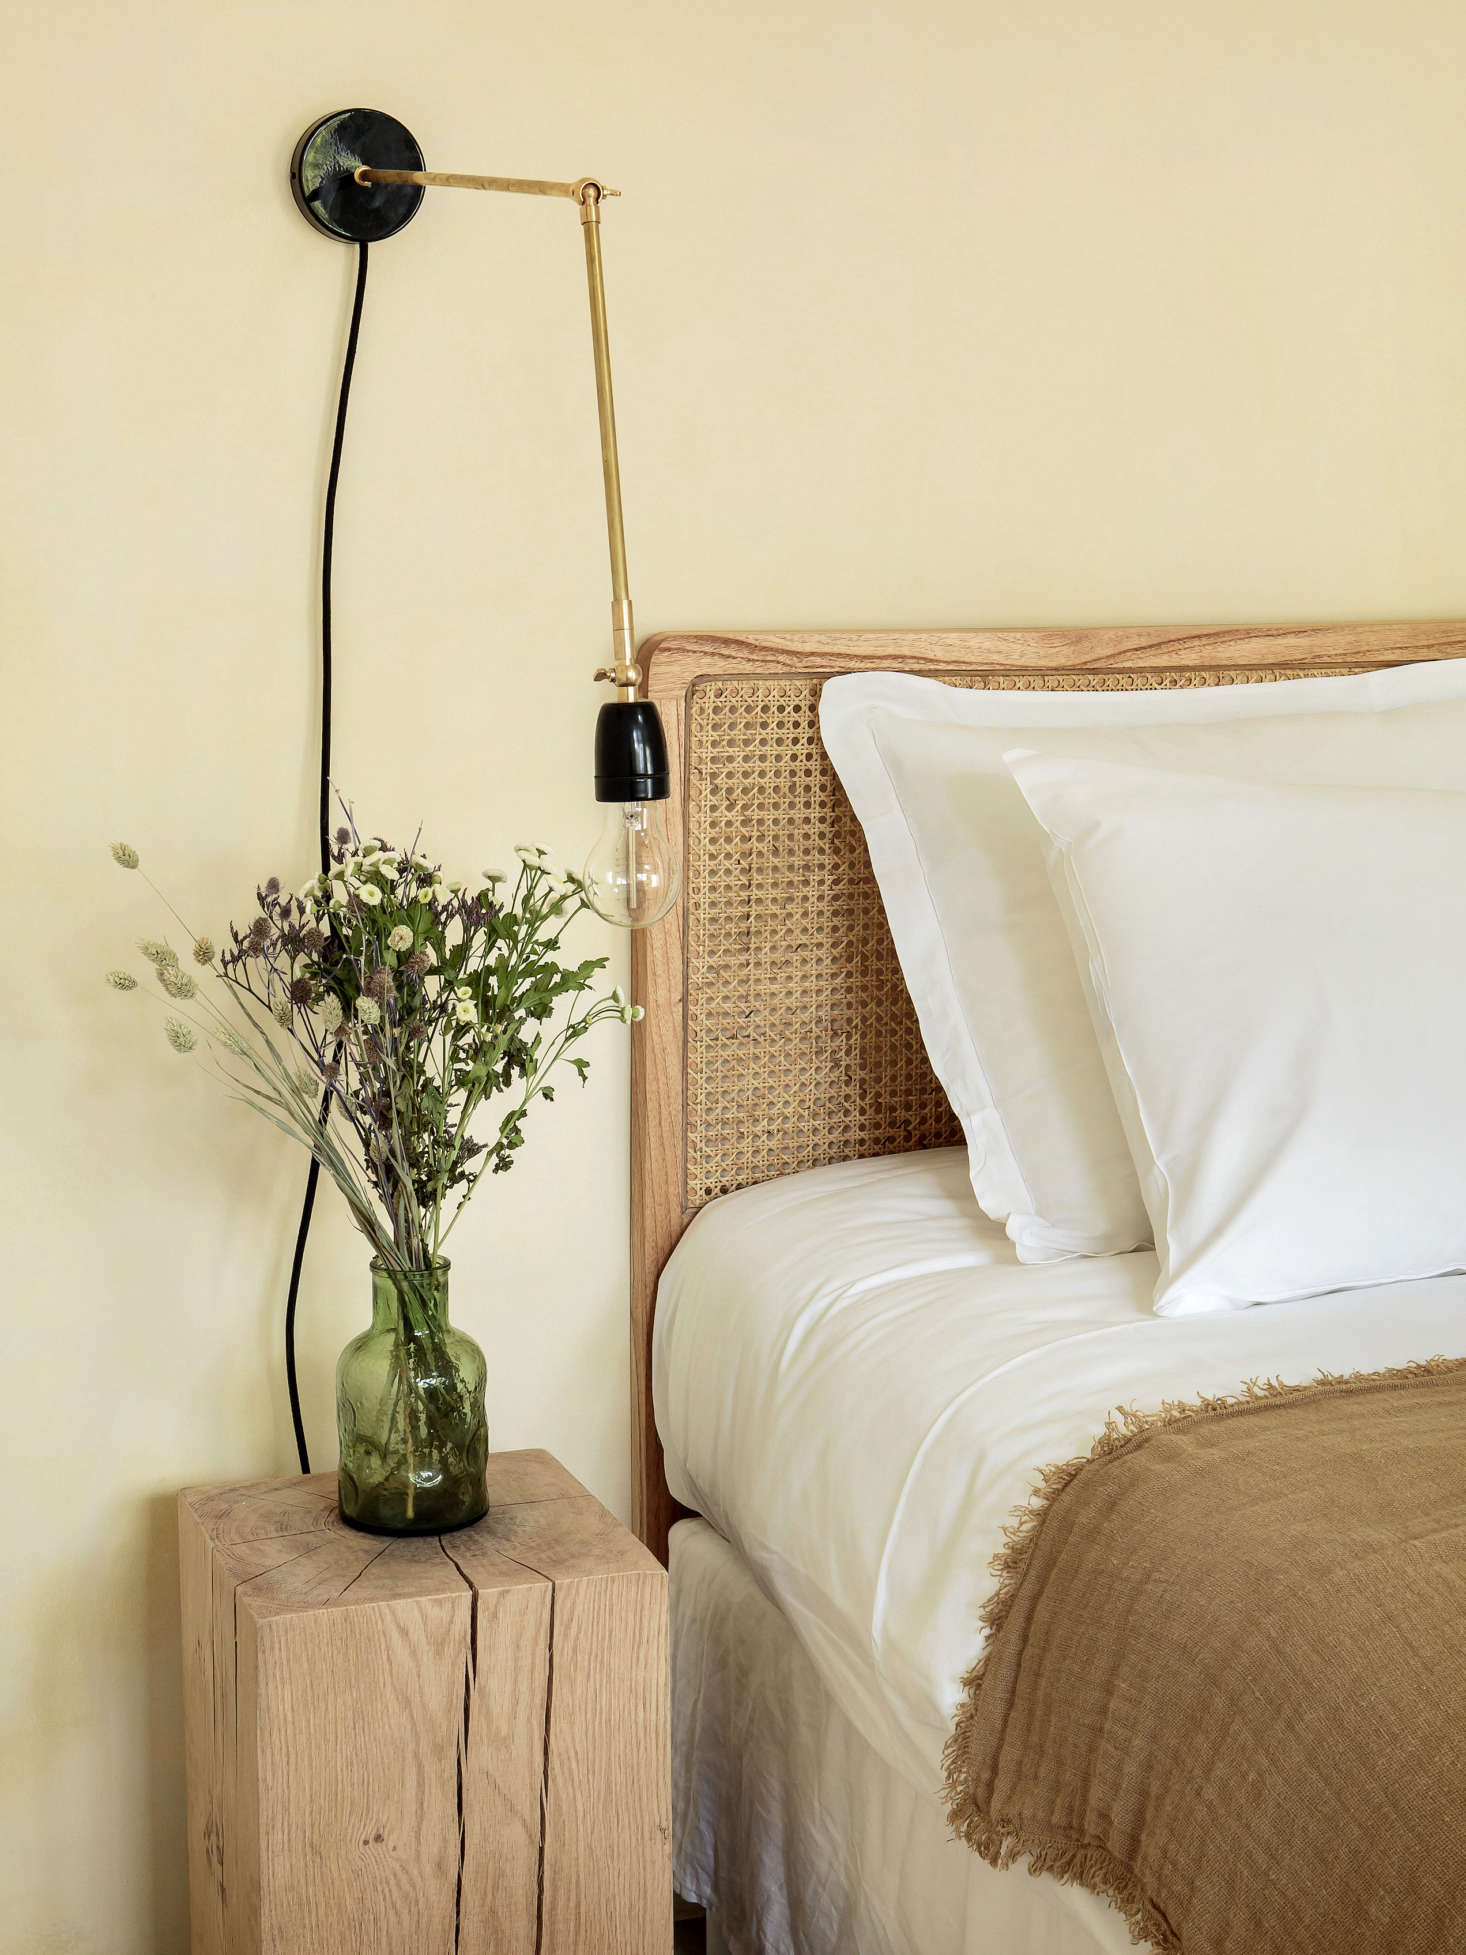 A rattan headboard and Porcelain and Brass Sconce from Zangra.